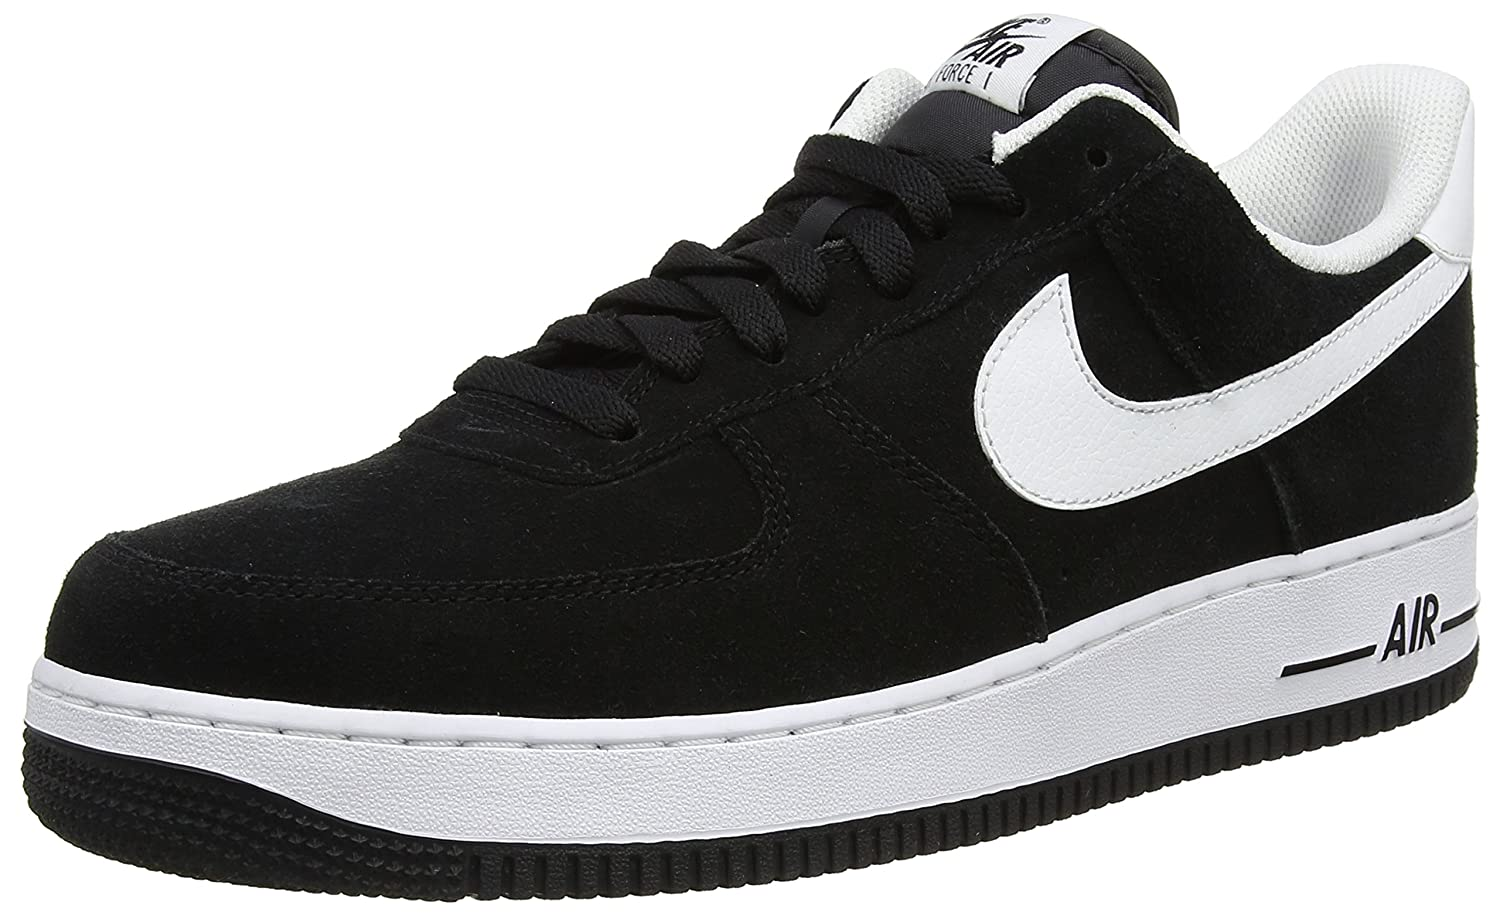 official photos fdcd1 e7d2b Amazon.com | Nike Men's Air Force 1 Low Sneaker | Basketball